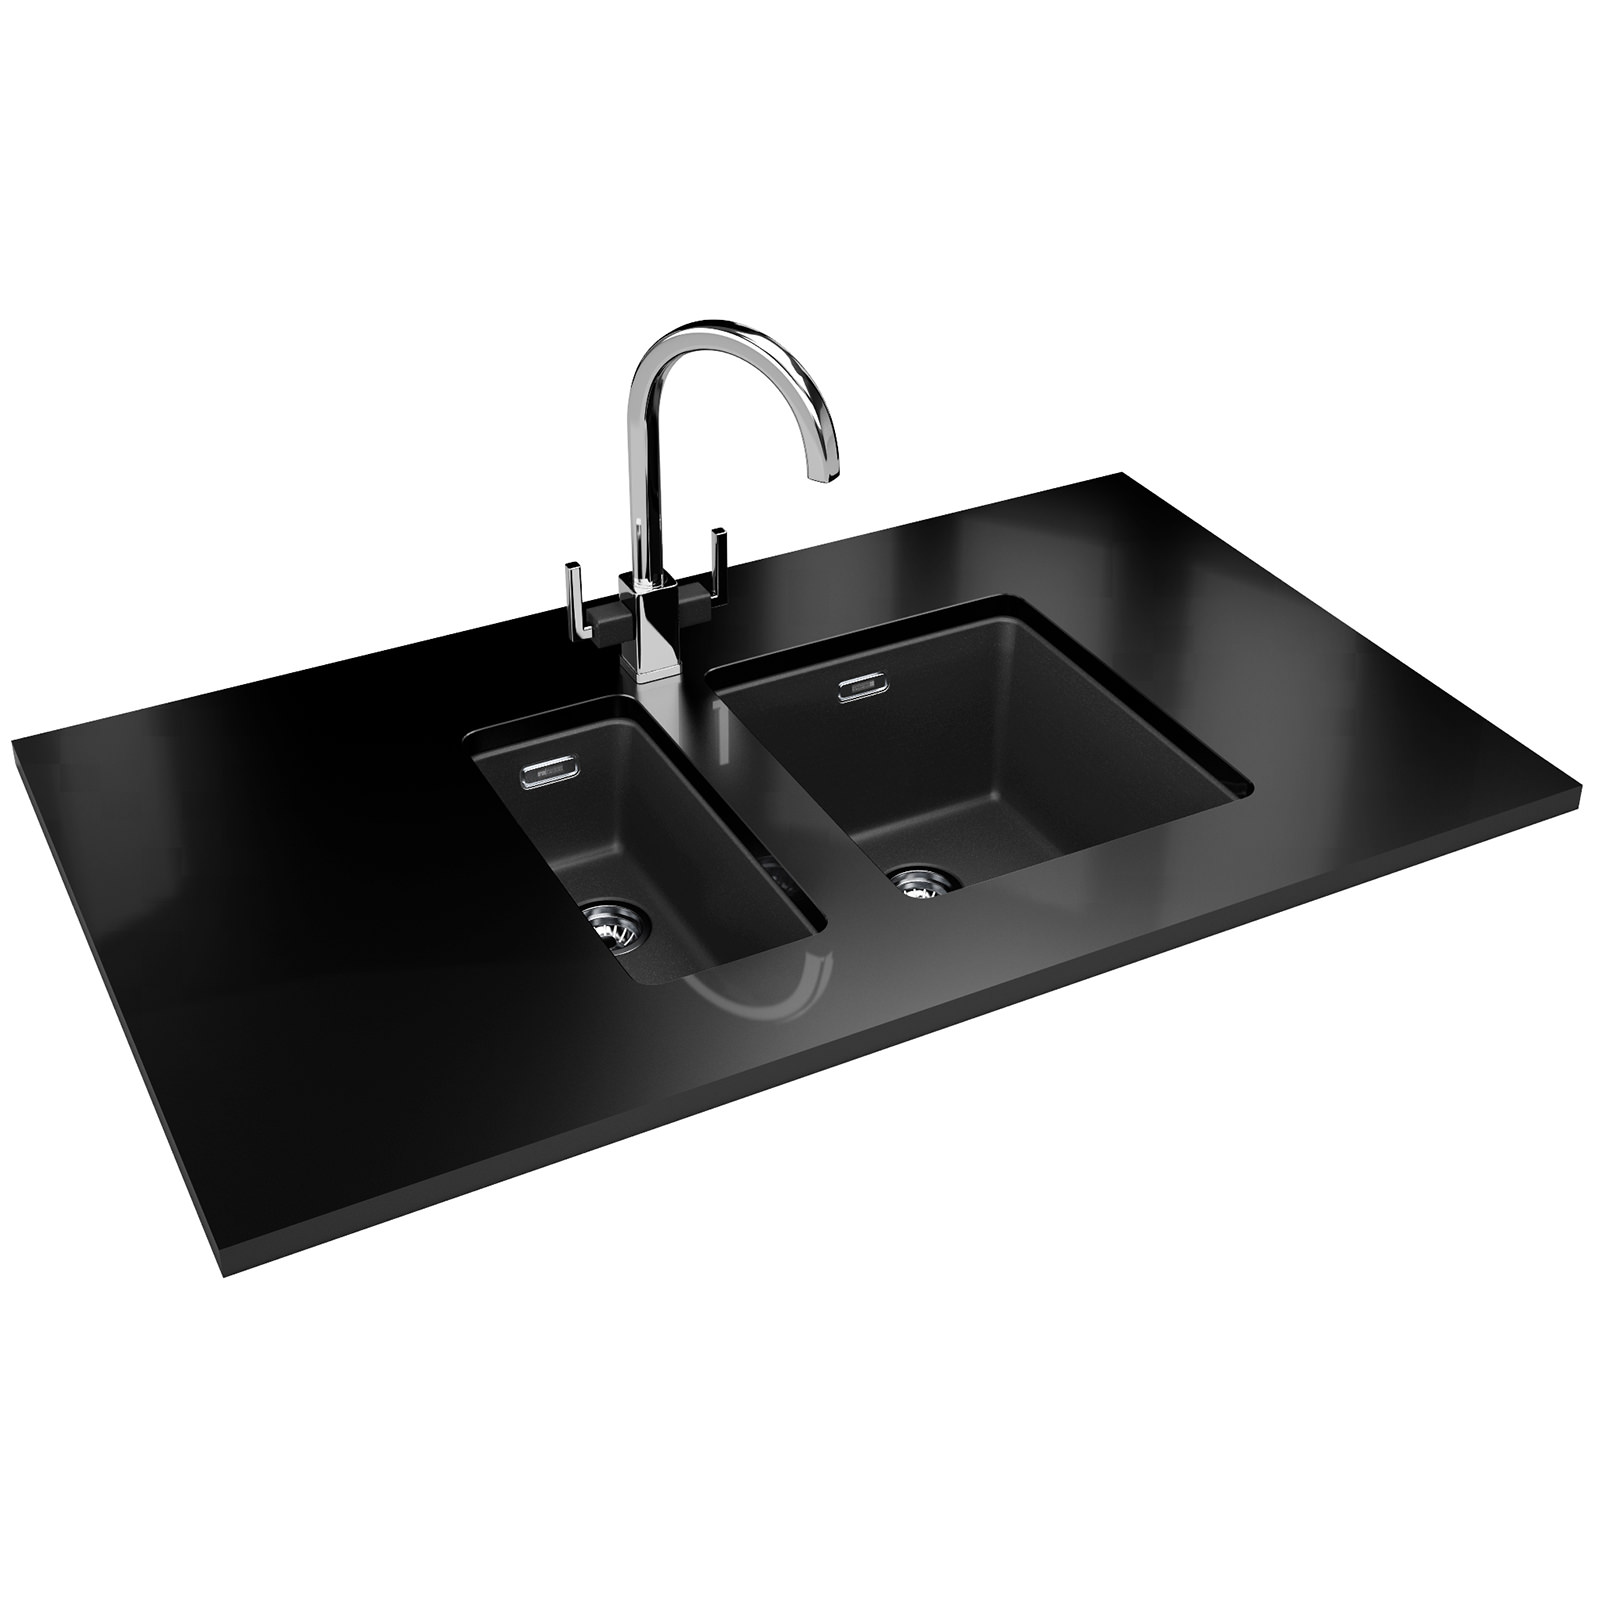 Franke Fragranite Undermount Sink : Franke Kubus KBG 110 34 Fragranite Onyx 1.0 Bowl Undermount Sink 125 ...